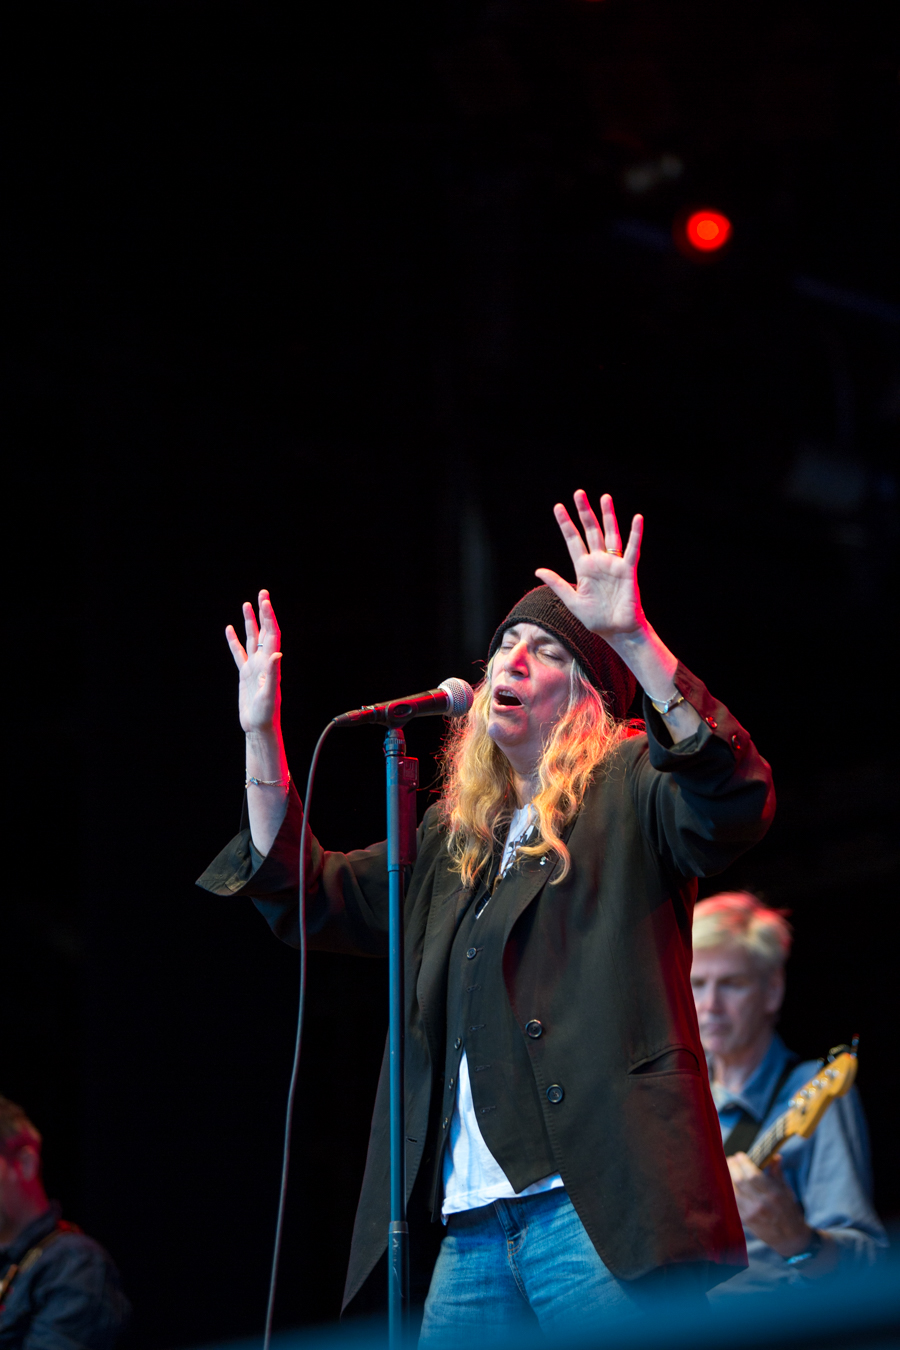 140730-Patti-Smith-Foto-Rebecca-Carlgren-livefoto-nu-photo--11